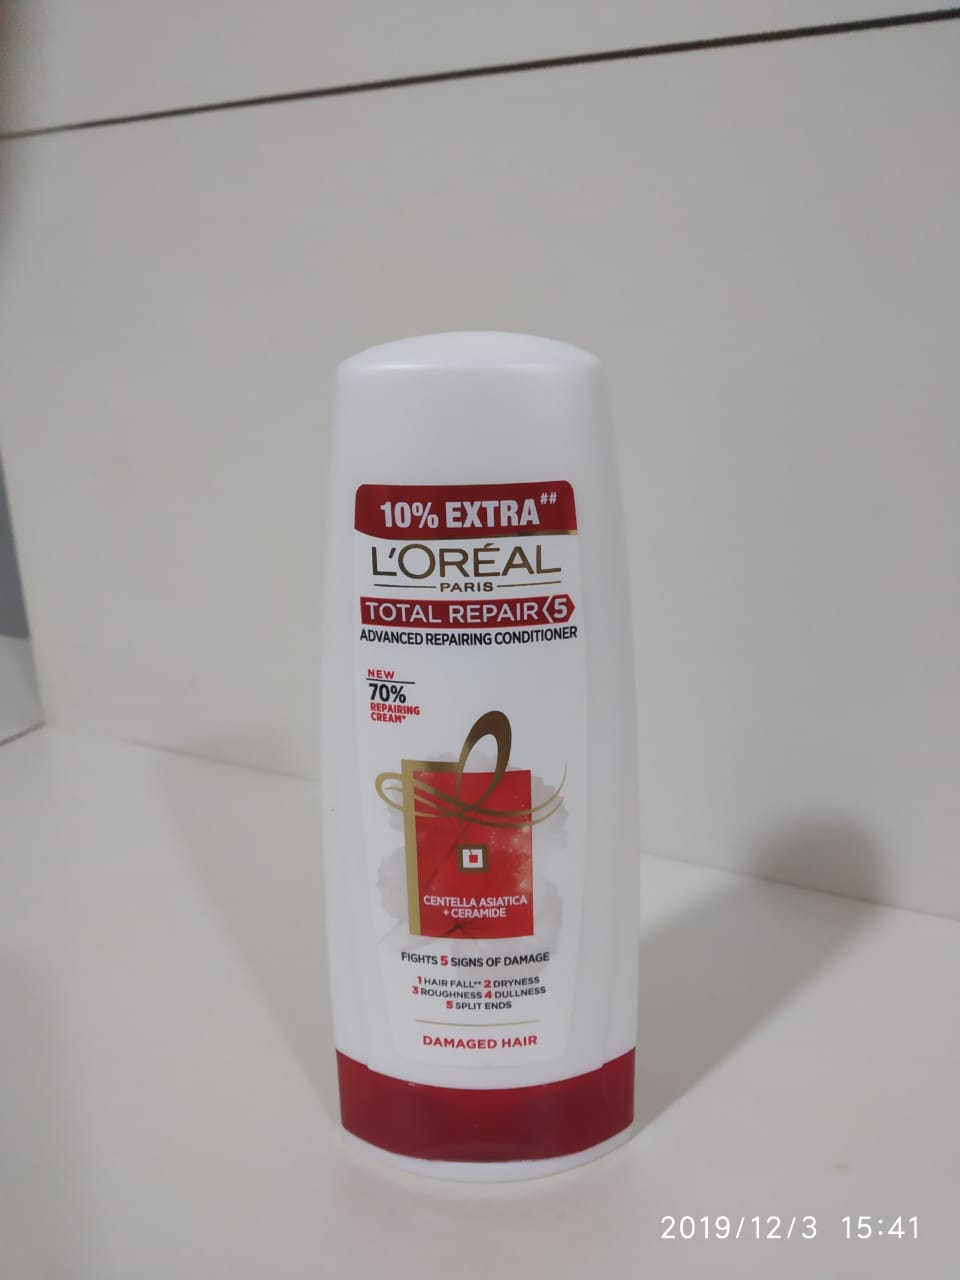 L'Oreal Paris Total Repair 5 Conditioner-Very nice shampoo-By nidzzz